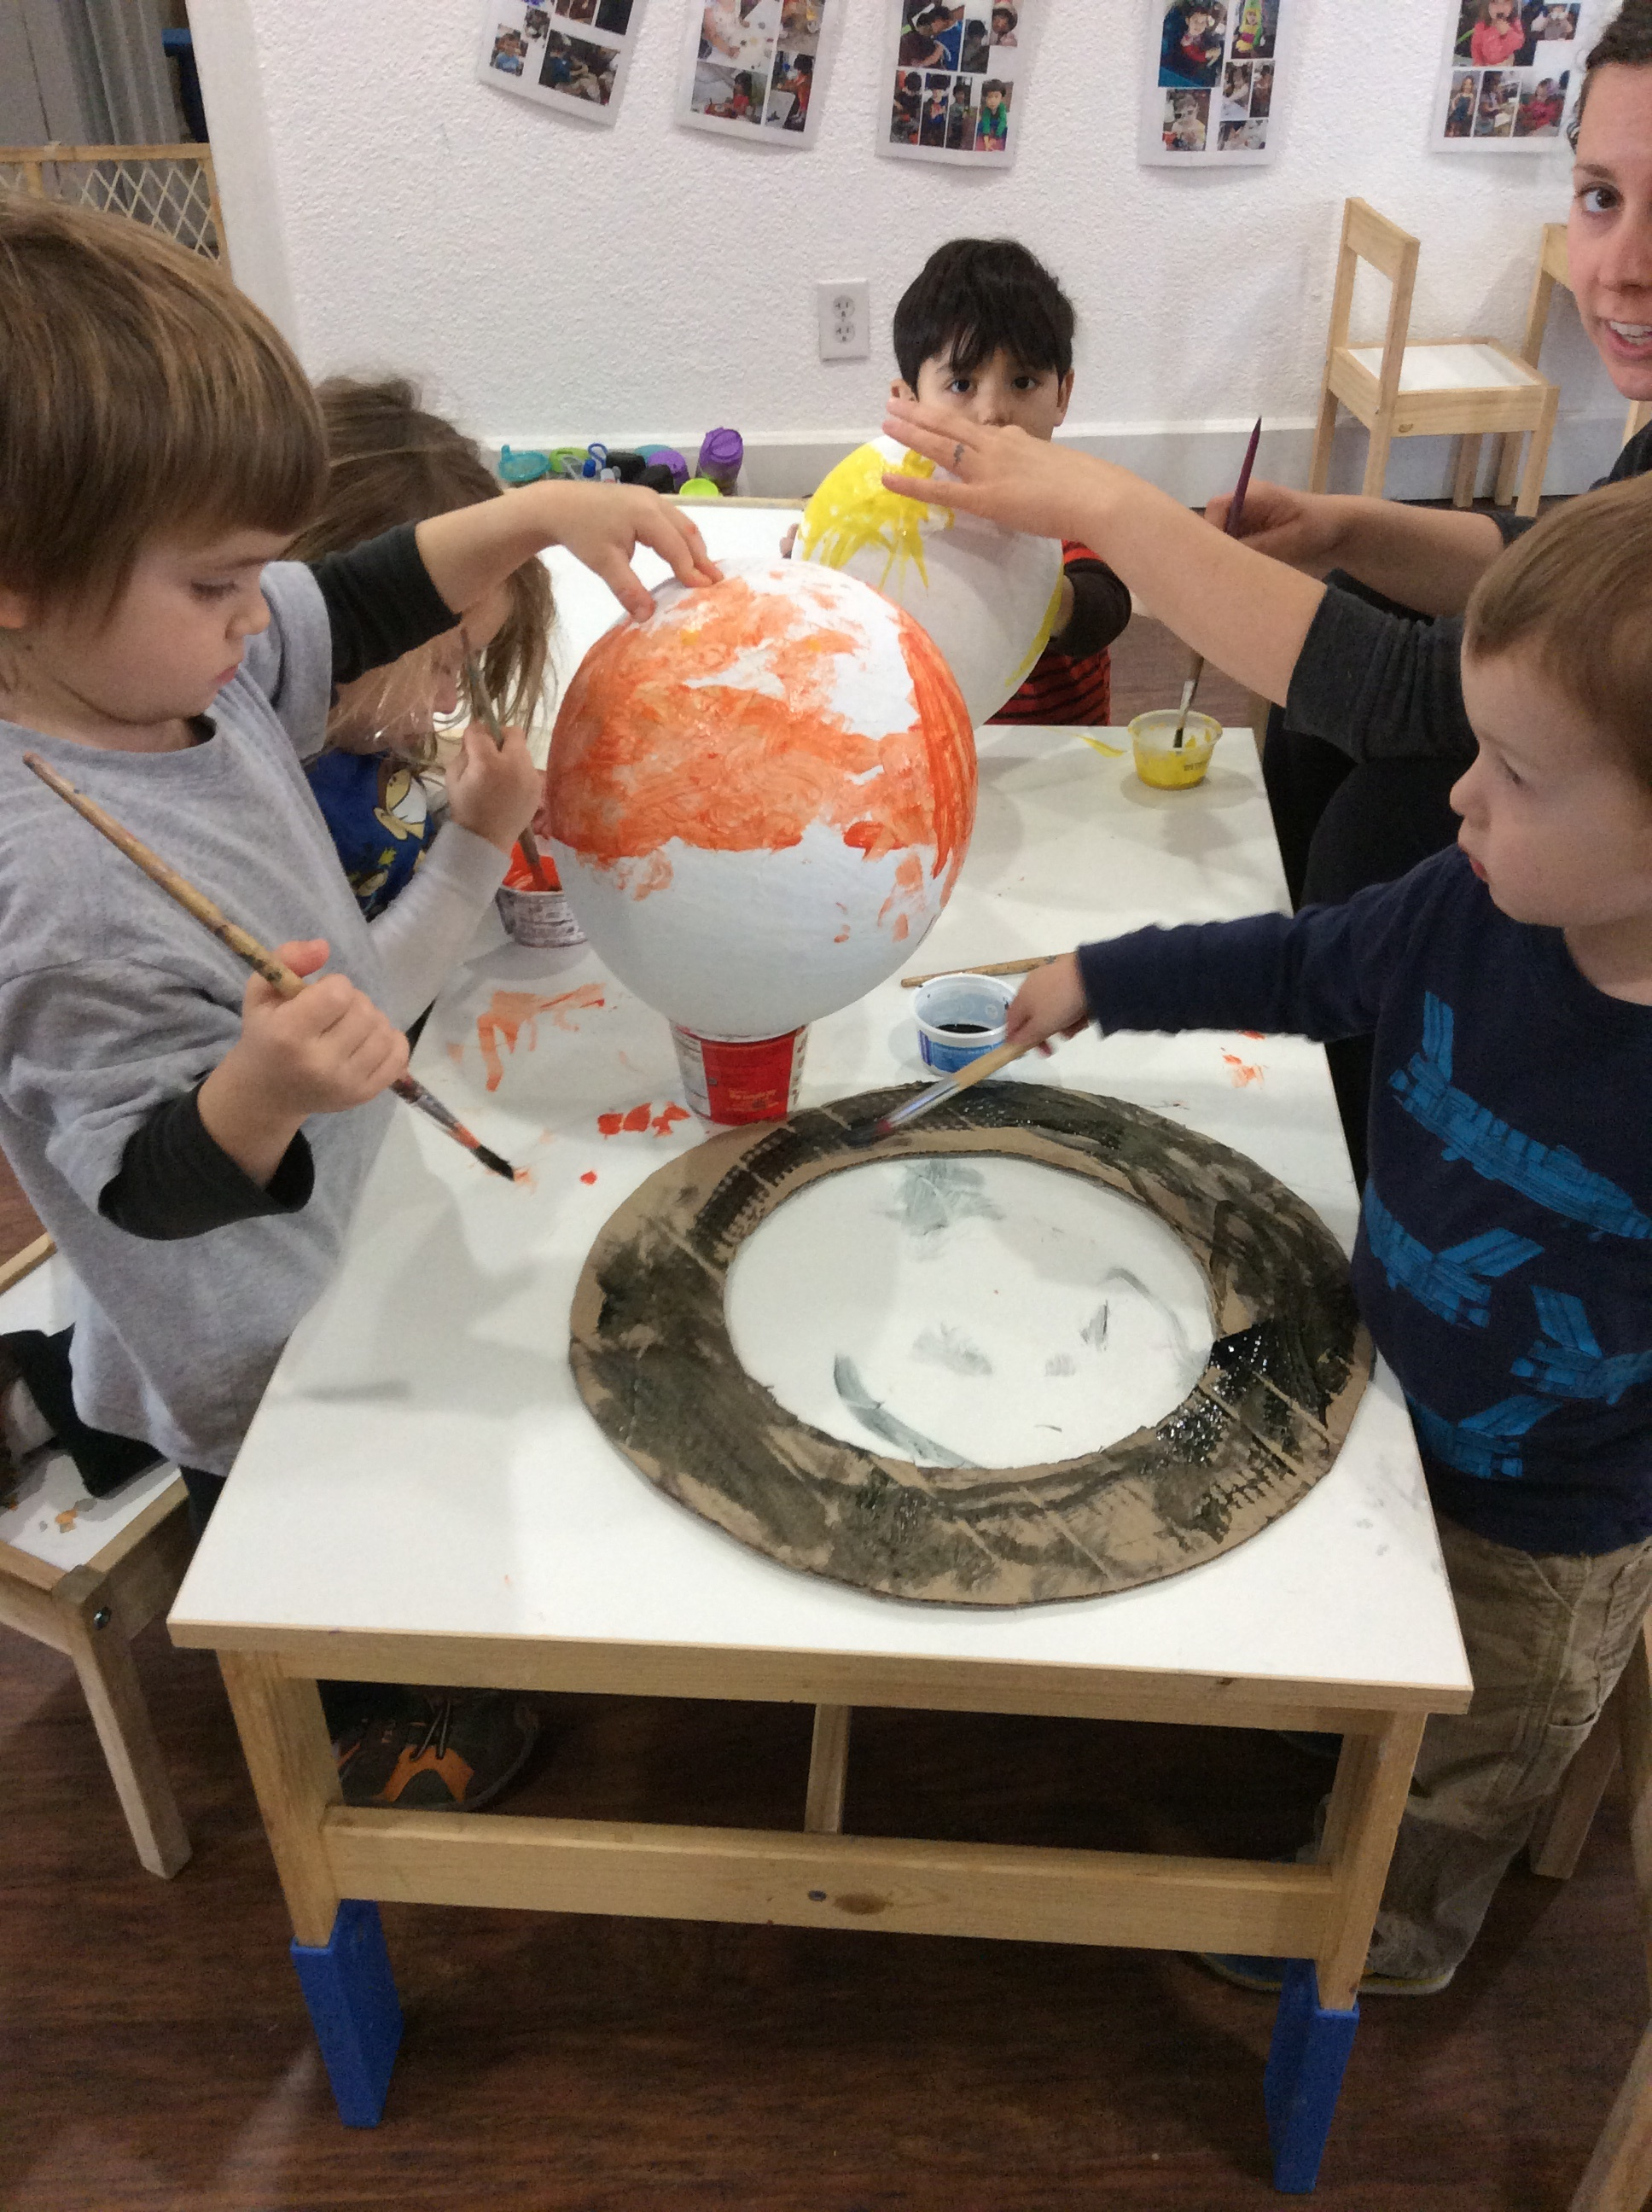 Models of Planets